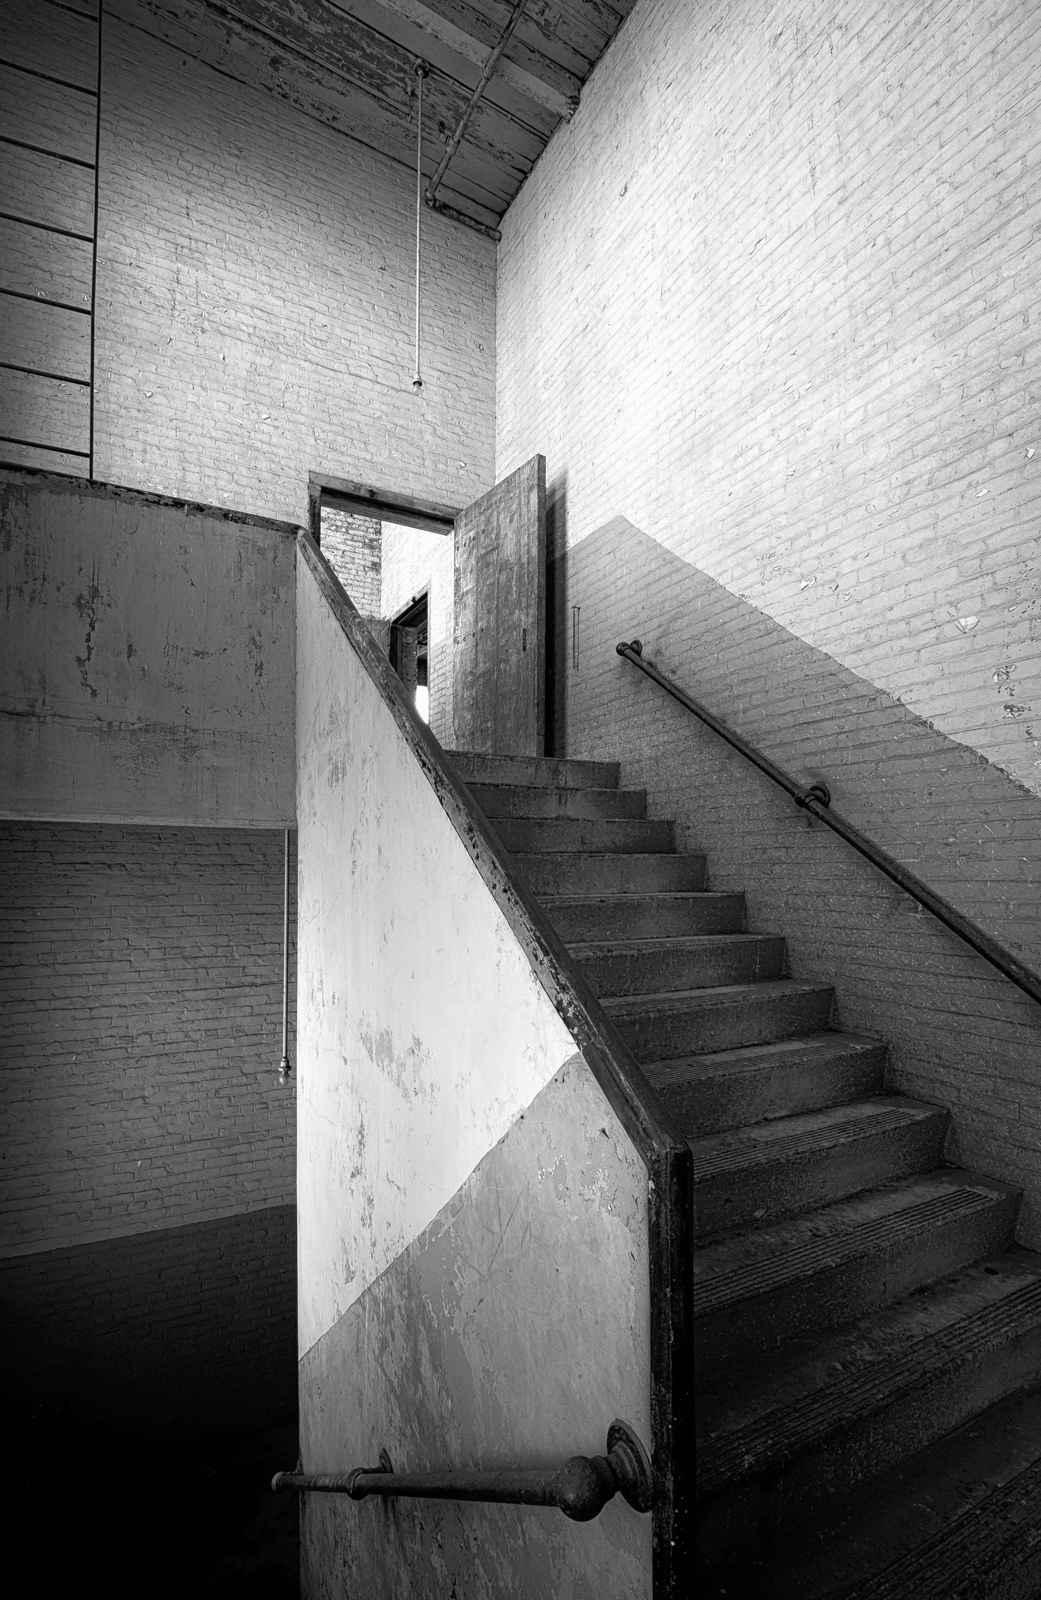 Washington Mill: Stairwell